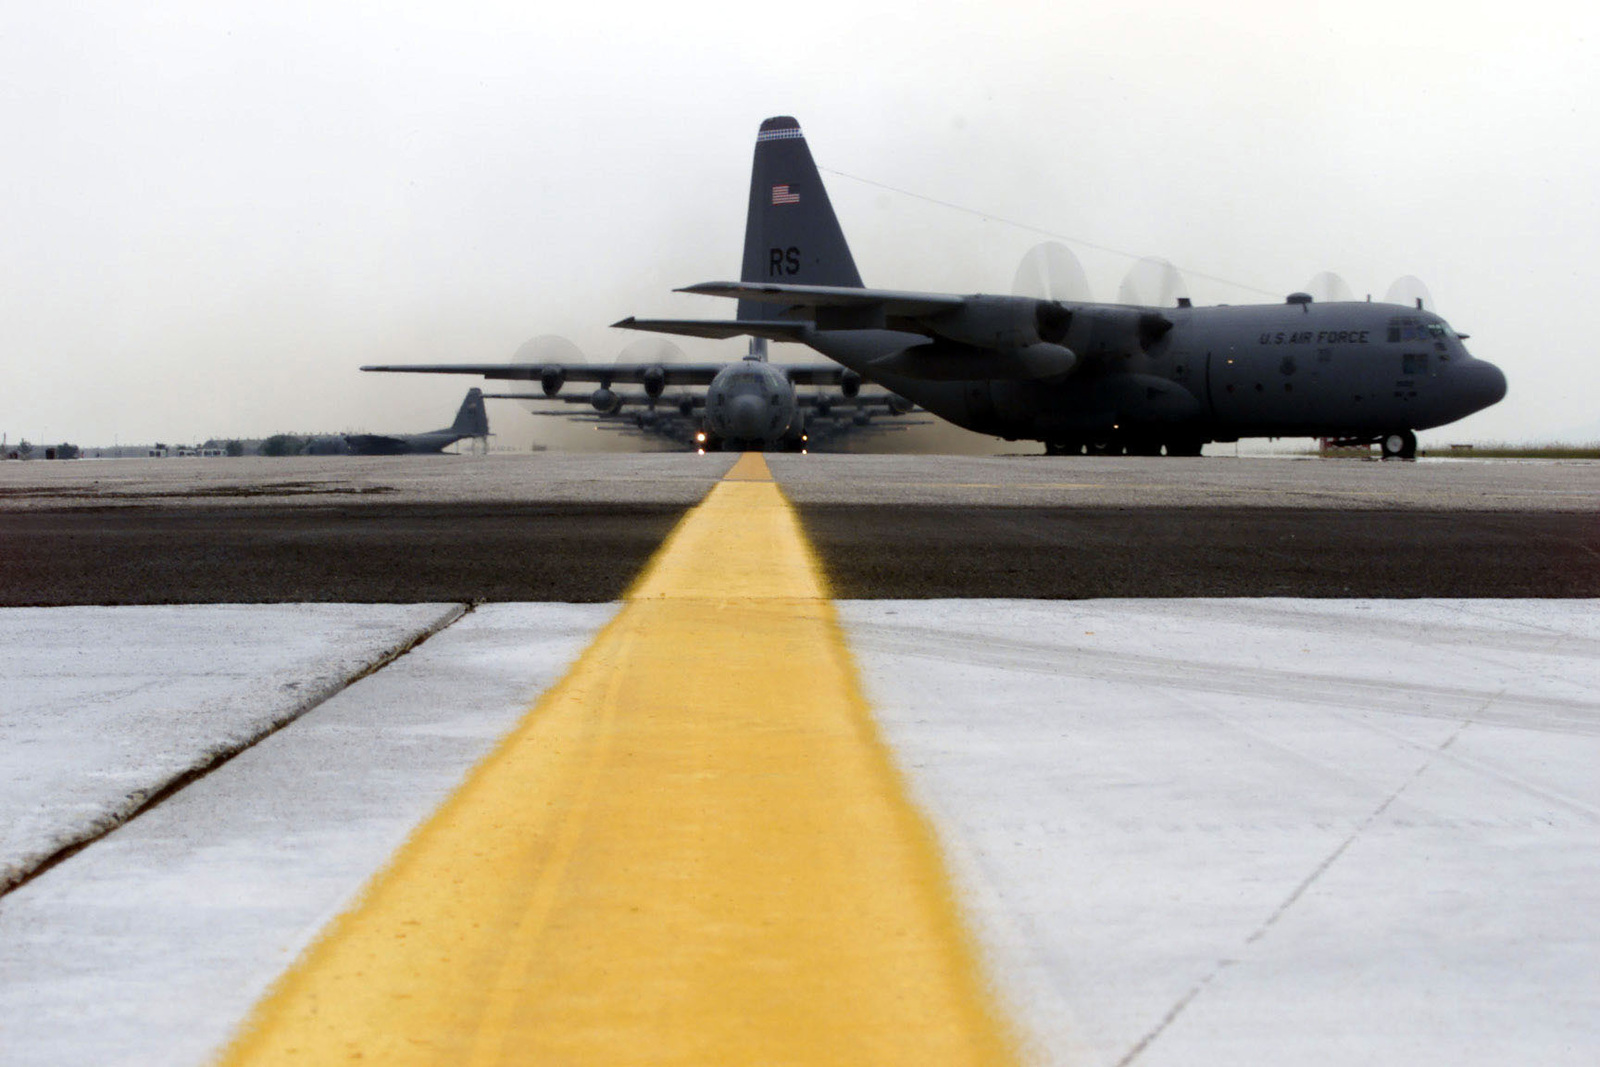 A US Air Force C-130 Hercules transport plane of the 86th Air Wing, Ramstein Air Base, Germany, starts it's turn on the runway, in preparation for take-off, in support of Exercise VENETO RESCUE. The C-130's dropped over 300 troops and multiple heavy vehicles (Troops & equipment not shown) during the drop portion of the exercise